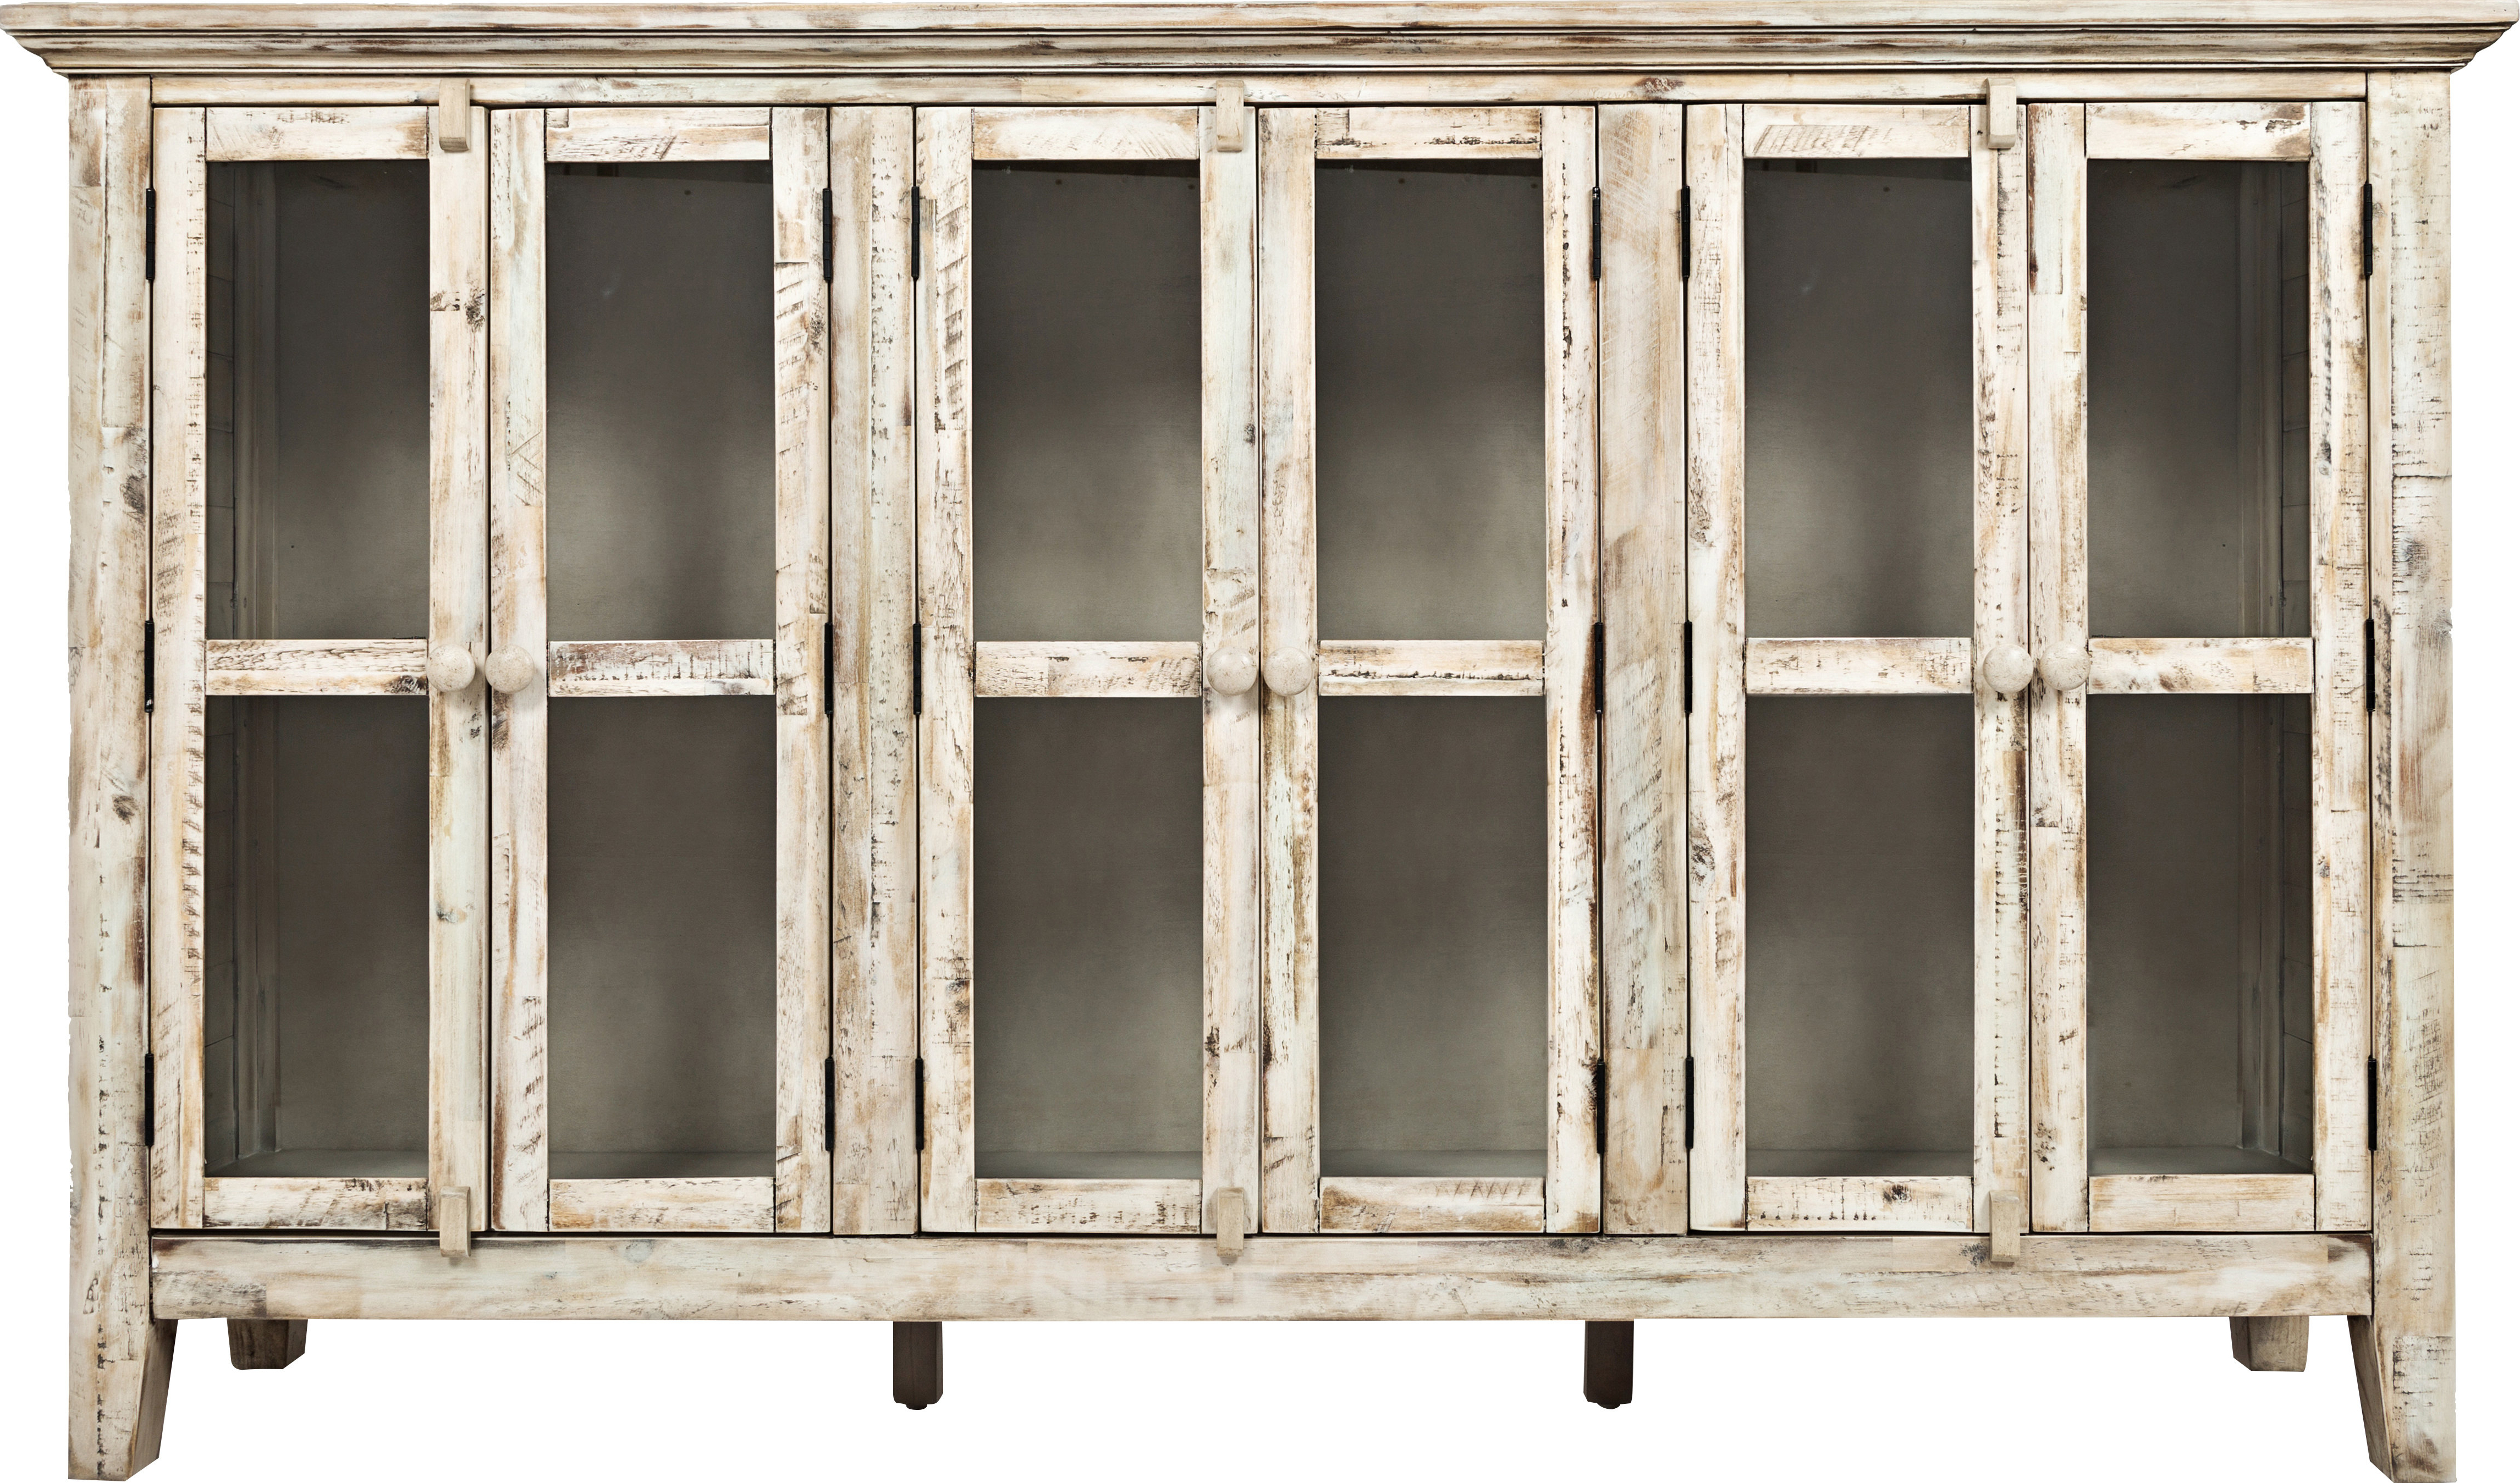 Farmhouse & Rustic Sideboards & Buffets | Birch Lane Intended For Palisade Sideboards (View 17 of 20)